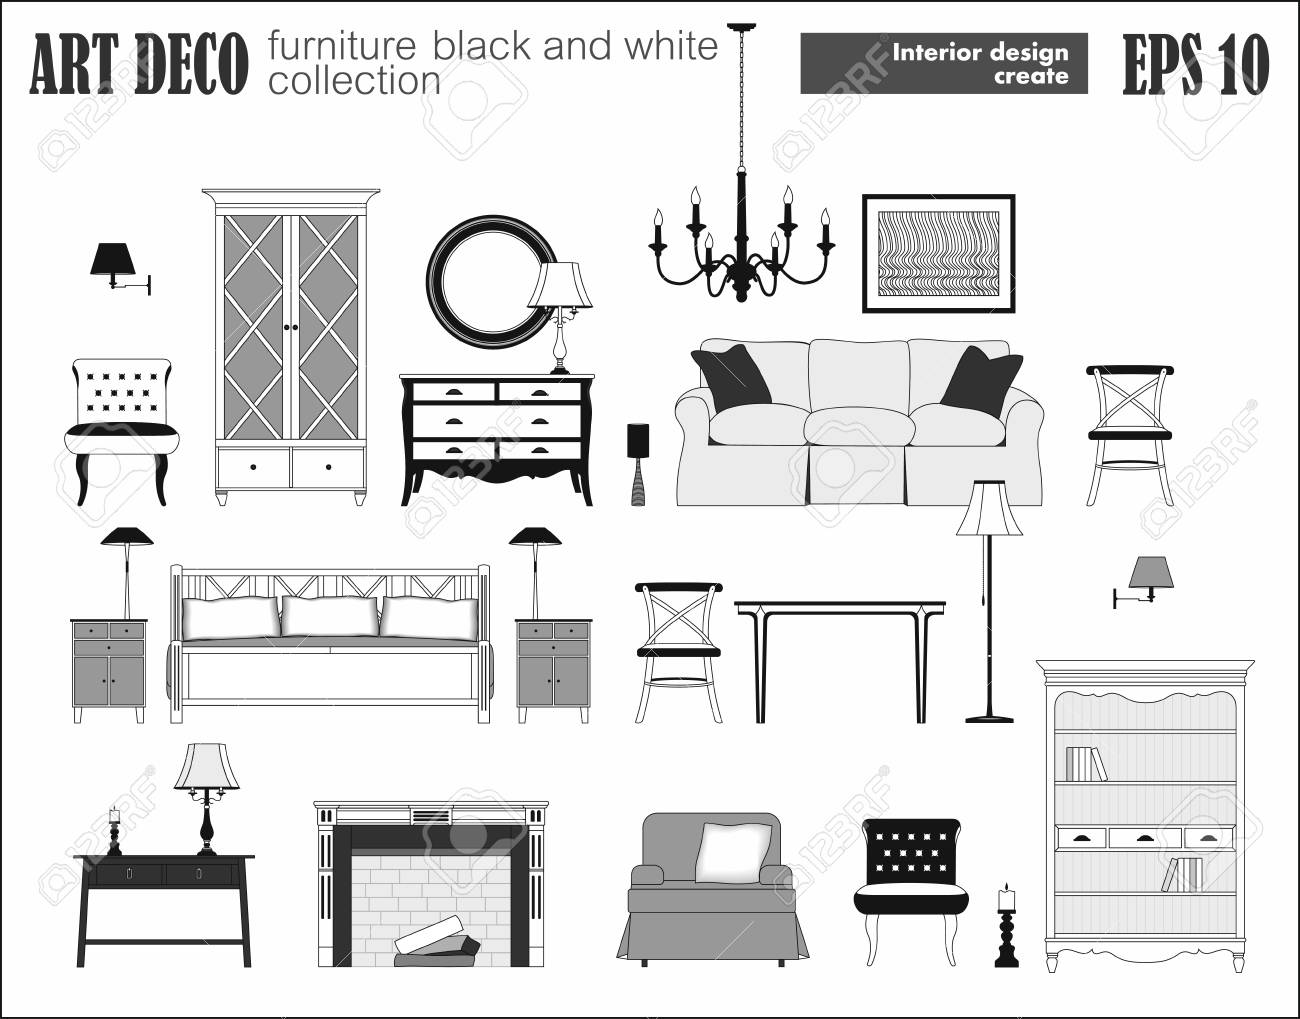 Living Room Furniture Set Art Deco Collection Modern Design Royalty Free Cliparts Vectors And Stock Illustration Image 91558492